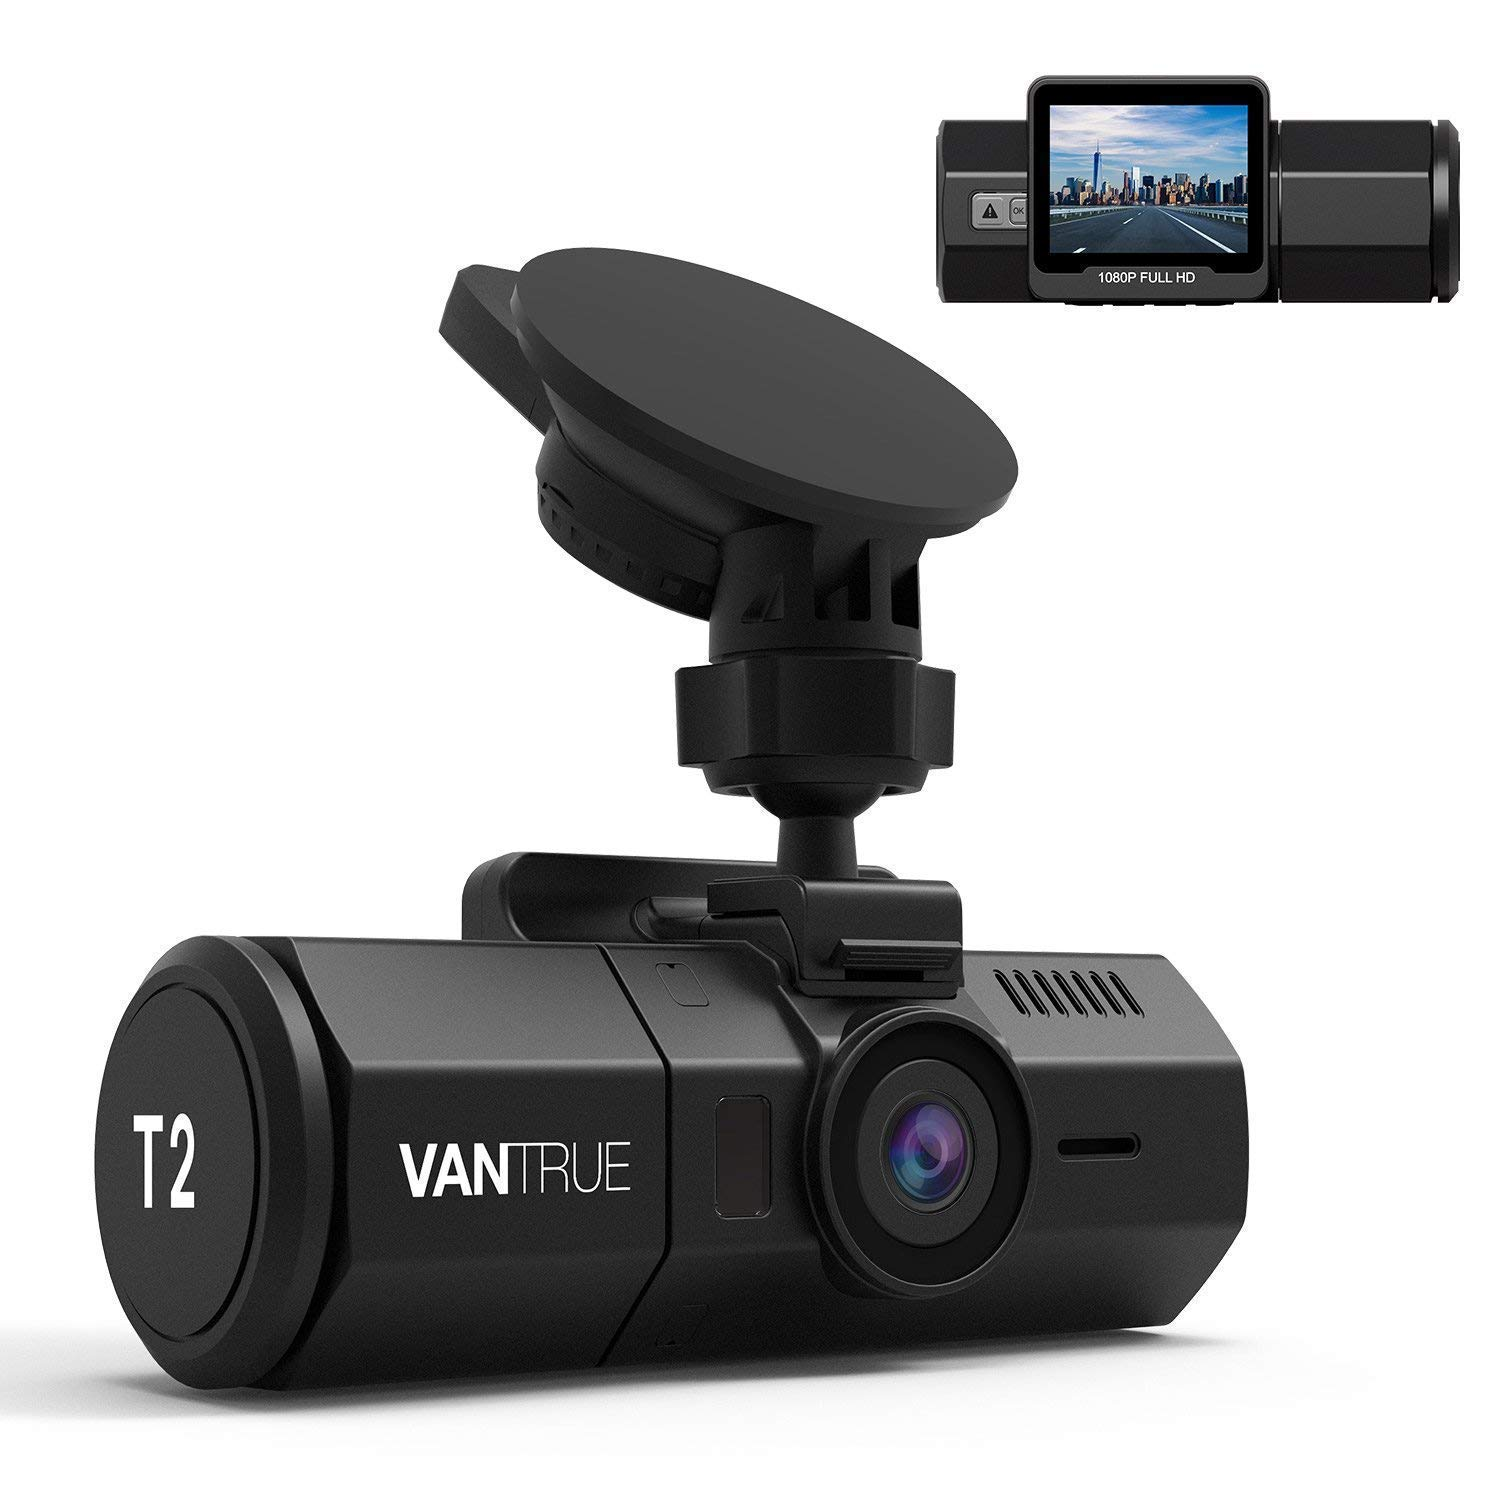 Vantrue T2 24 7 Recording Dash Cam Super Capacitor Car Camera 1920x1080P 2.0 Inch LCD 160 Degree OBD2 Dashboard Camera, Microwave Parking Mode, Night Vision, Sony Sensor, Support 256GB Max